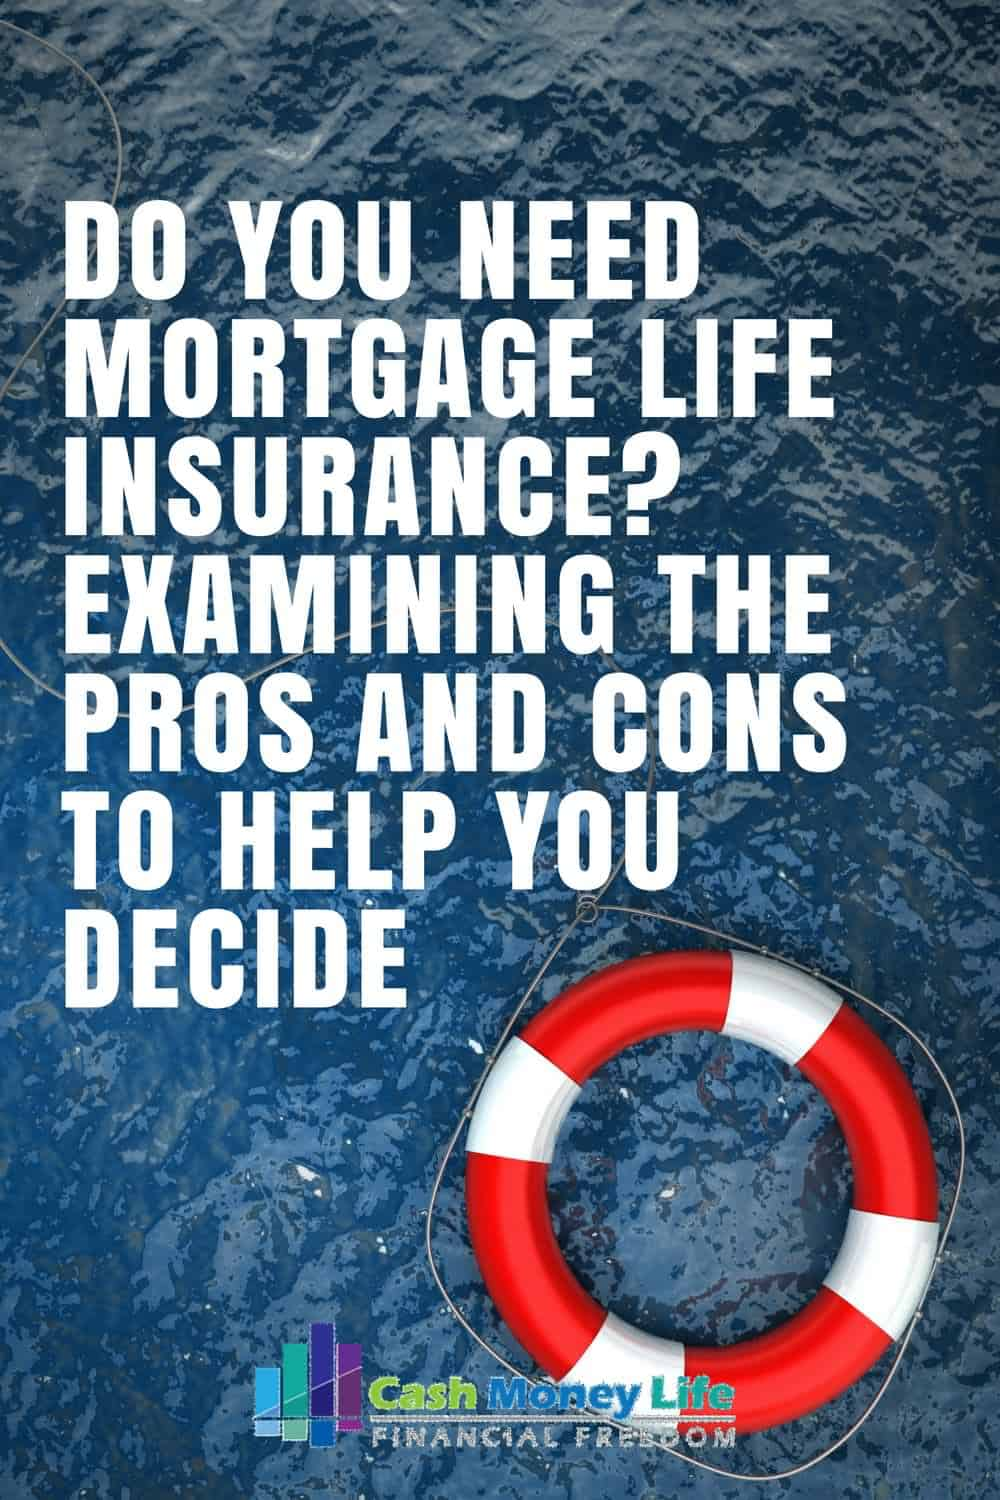 Life Insurance Quotes Pros And Cons Of Mortgage Life Insurance  Cash Money Life